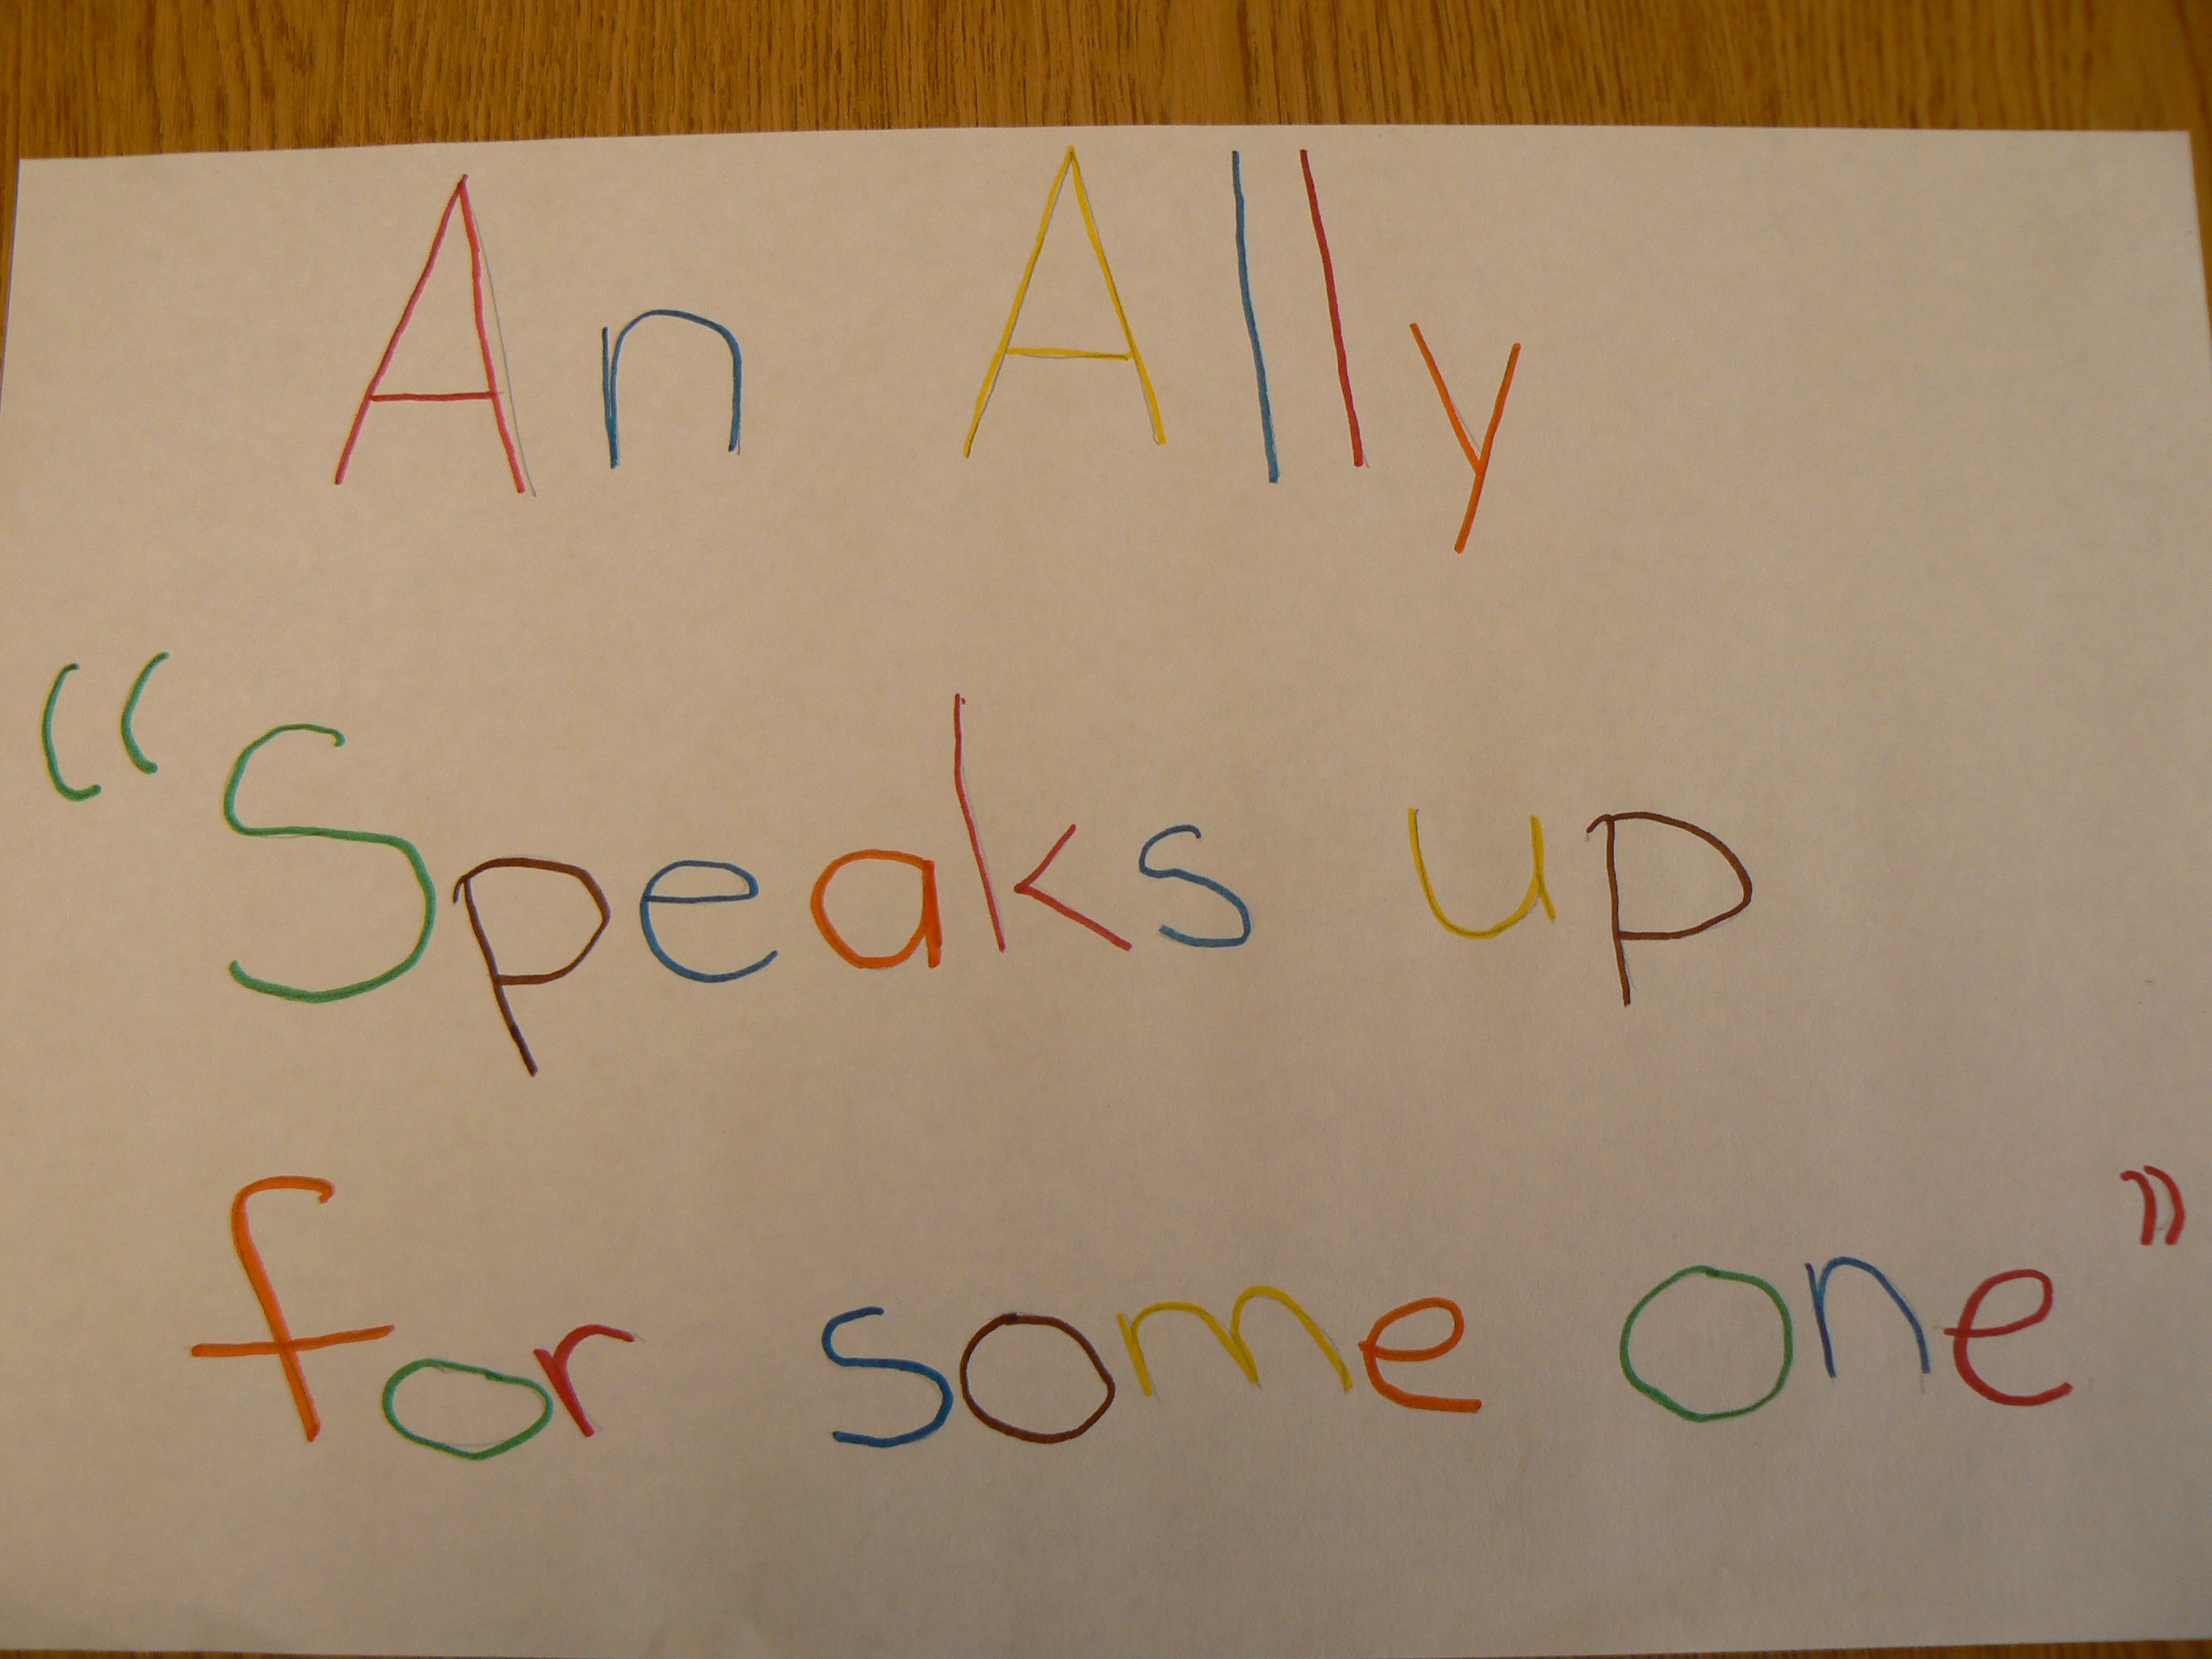 Allies of all ages create safe and inclusive schools